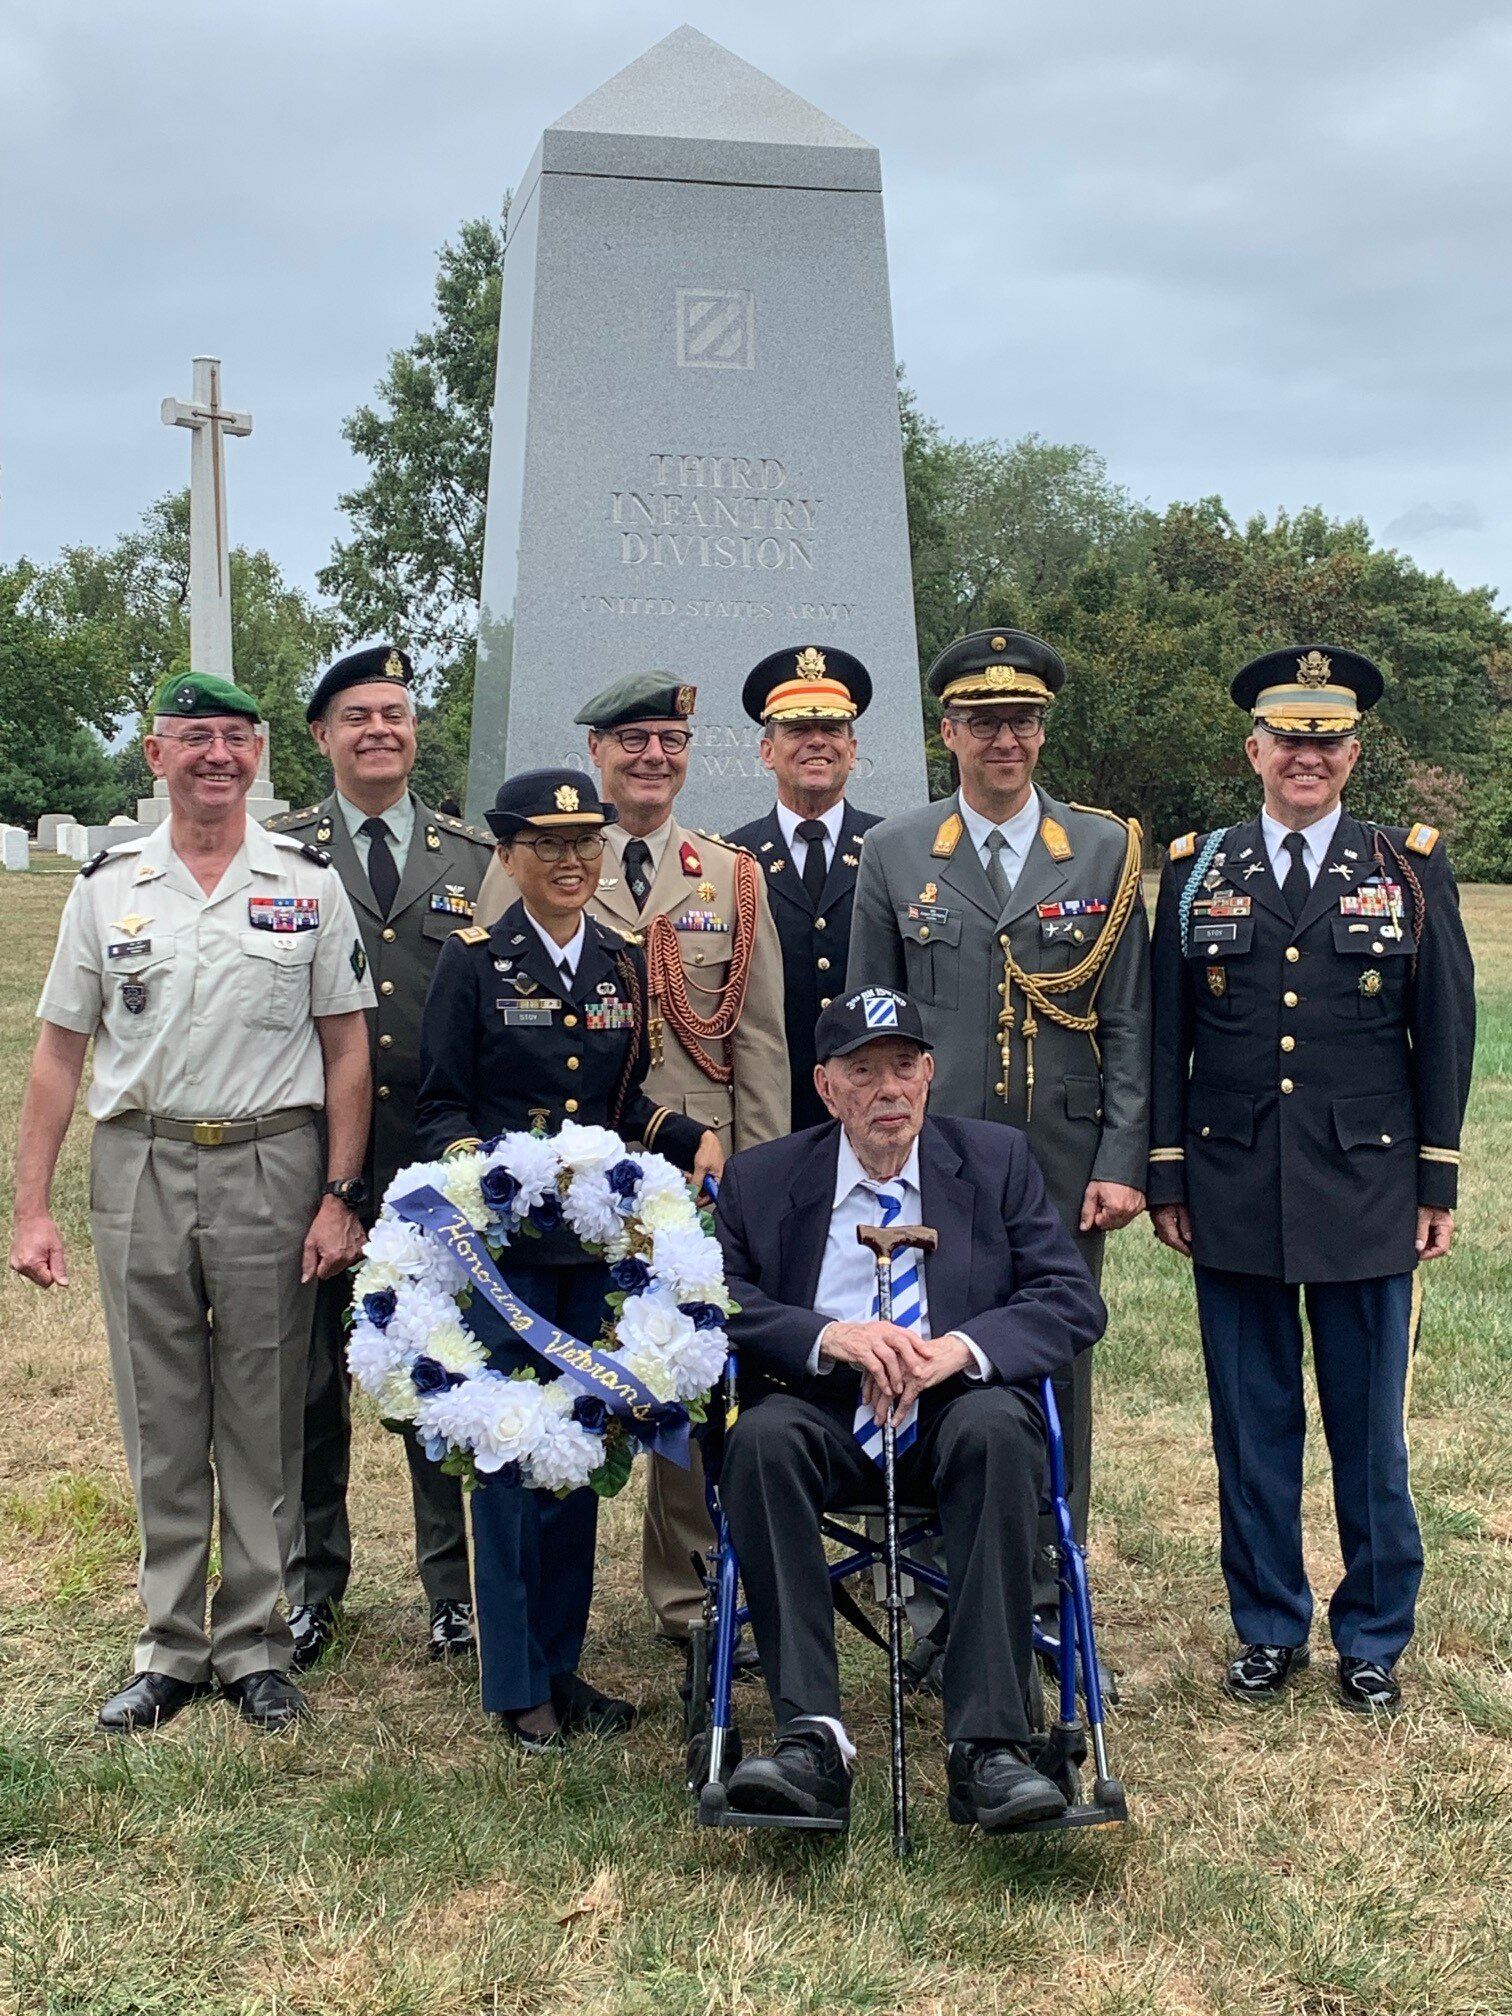 Before the 3rd Infantry Division Monument.  From left, standing: Major General Brice Haudet, former Defense Attaché of France, Colonel Vasileios Lampropoulos, Defense Attaché of Greece, Lieutenant Colonel Monika Stoy (President of the Out post International, Society of the 3rd Infantry Division) Colonel Paul Elverding, Defense Attaché of The Netherlands, Major General Jügen Ortner, Defense Attaché of Austria, Lieutenant Colonel Tim Stoy (President of the 15th Infantry Regiment Association).  Seated in front: U.S. Army veteran (WWII) Charlie Condron from New York, almost 95 years old, who fought all the way from Northern Africa, Sicily, Italy, Southern France, Germany, to Salzburg, Austria.